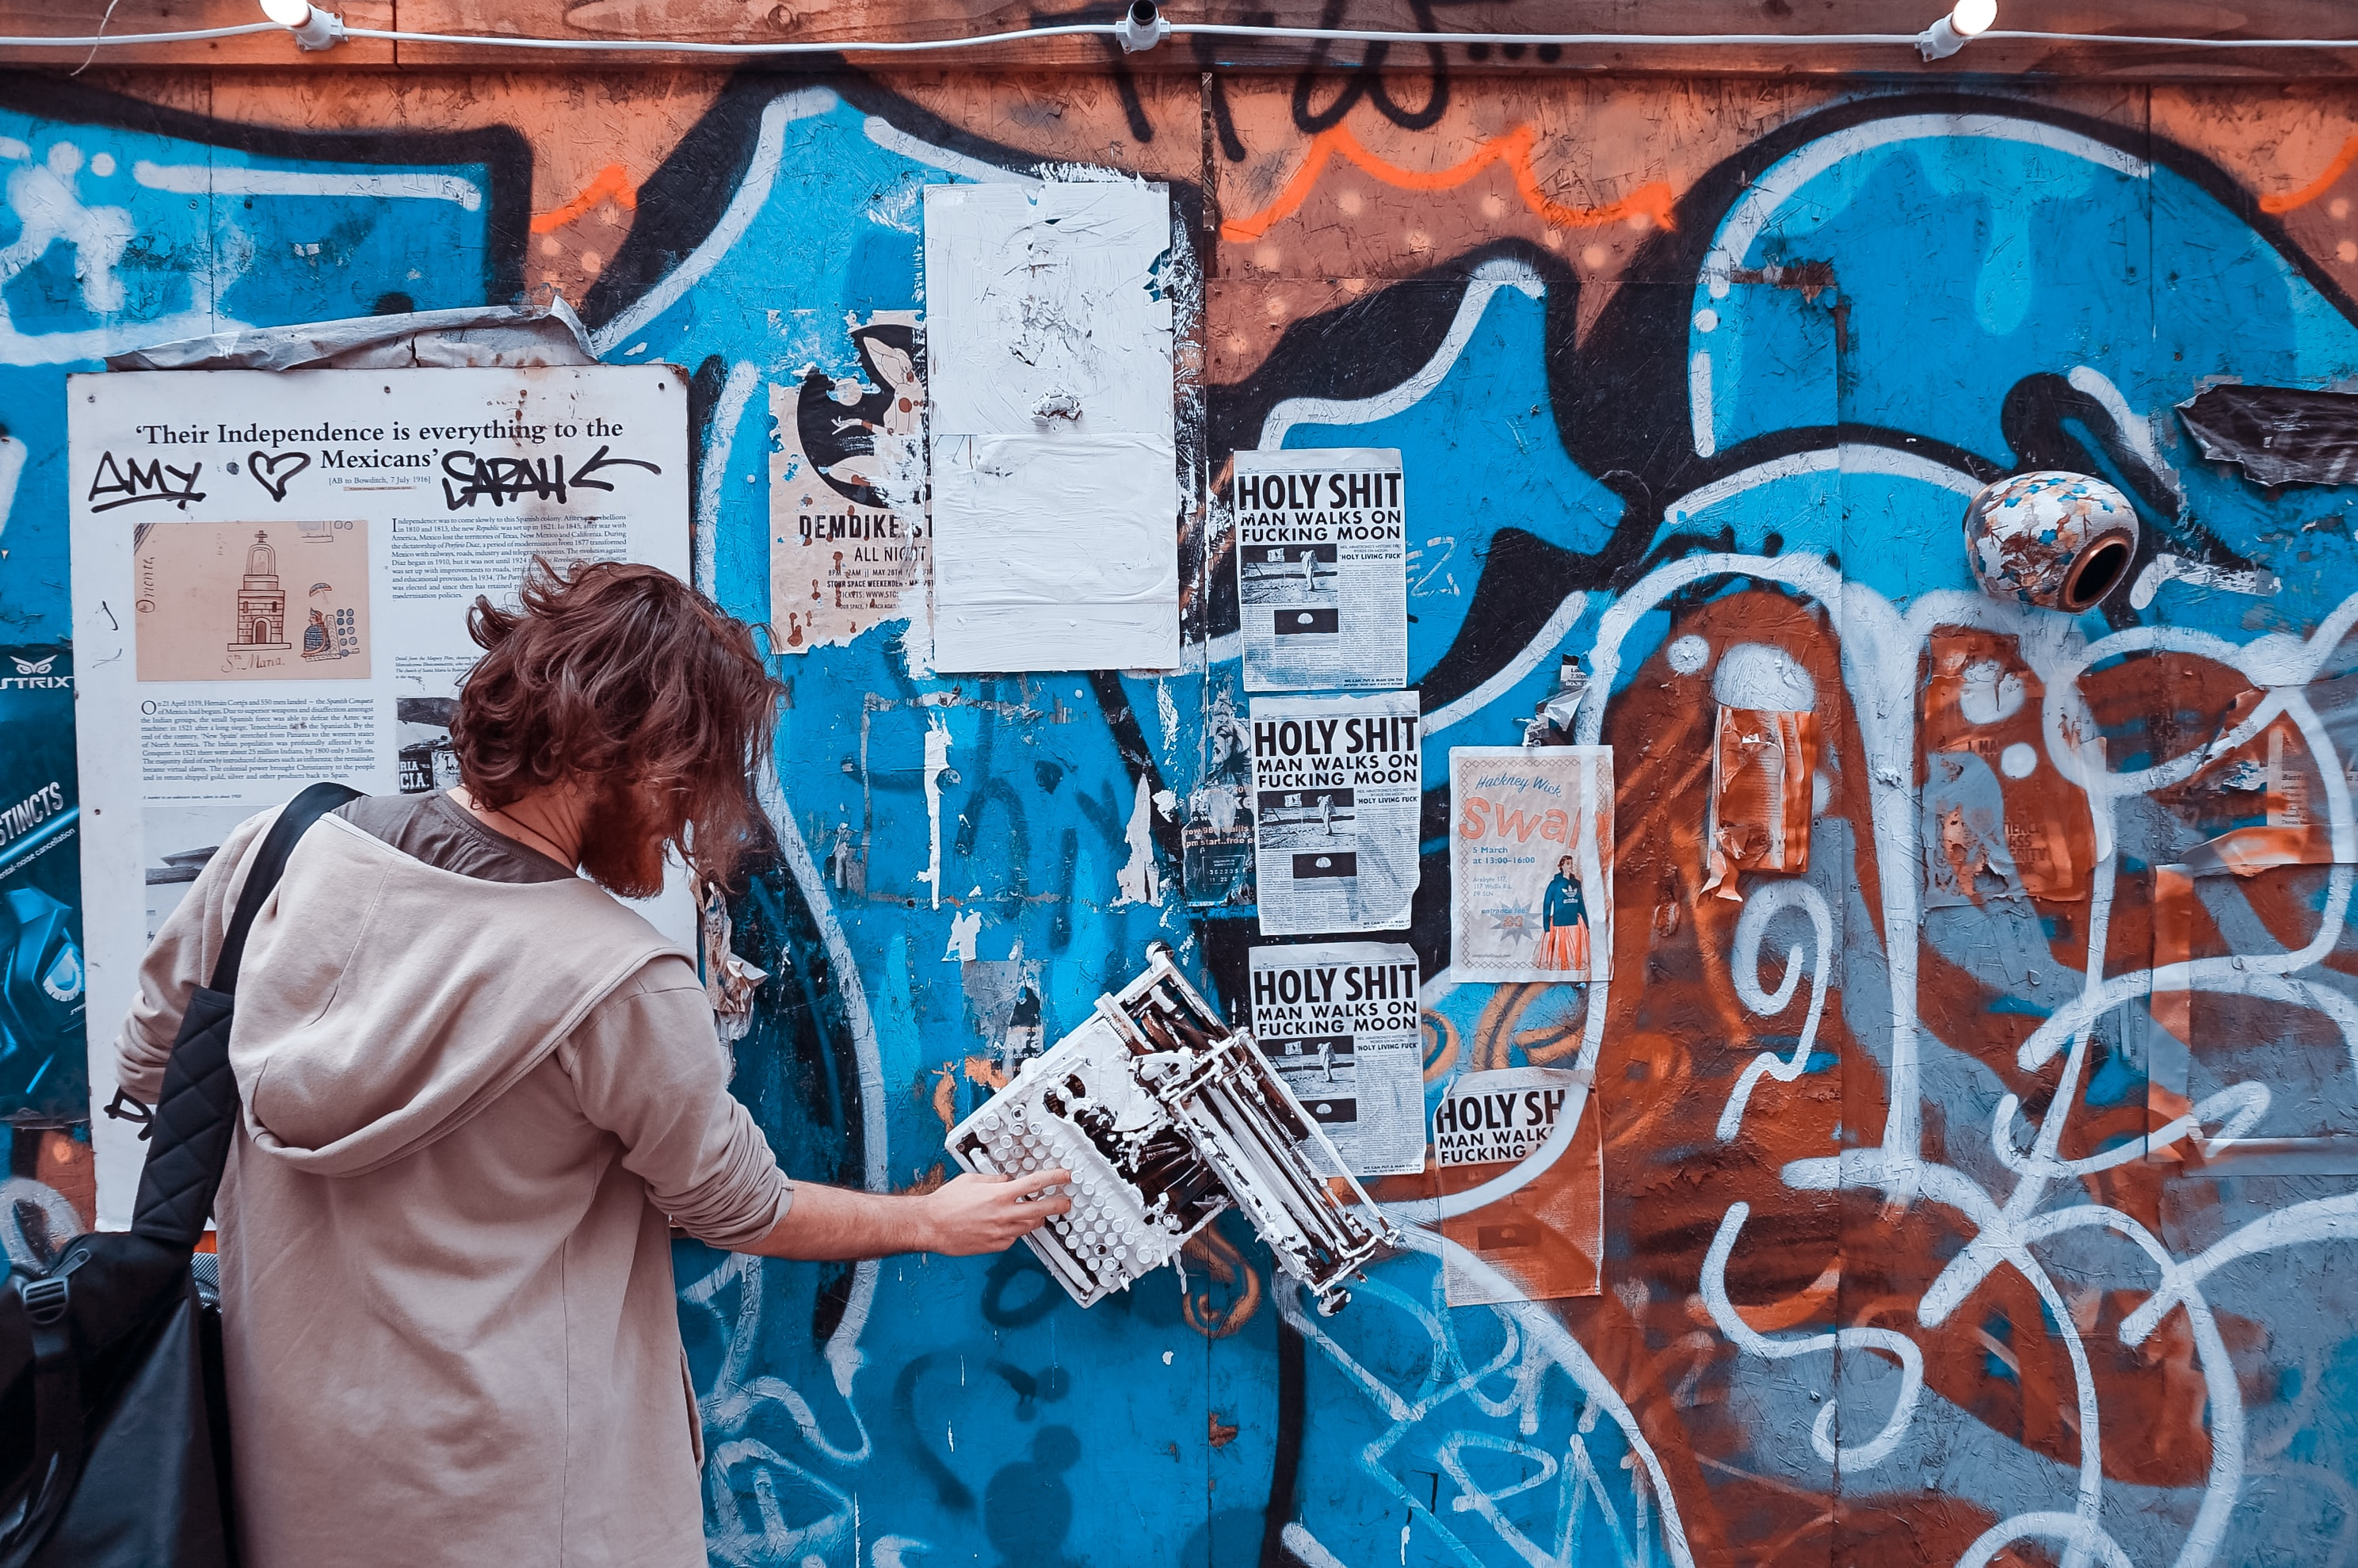 A man putting up posters over a wall covered in graffiti.